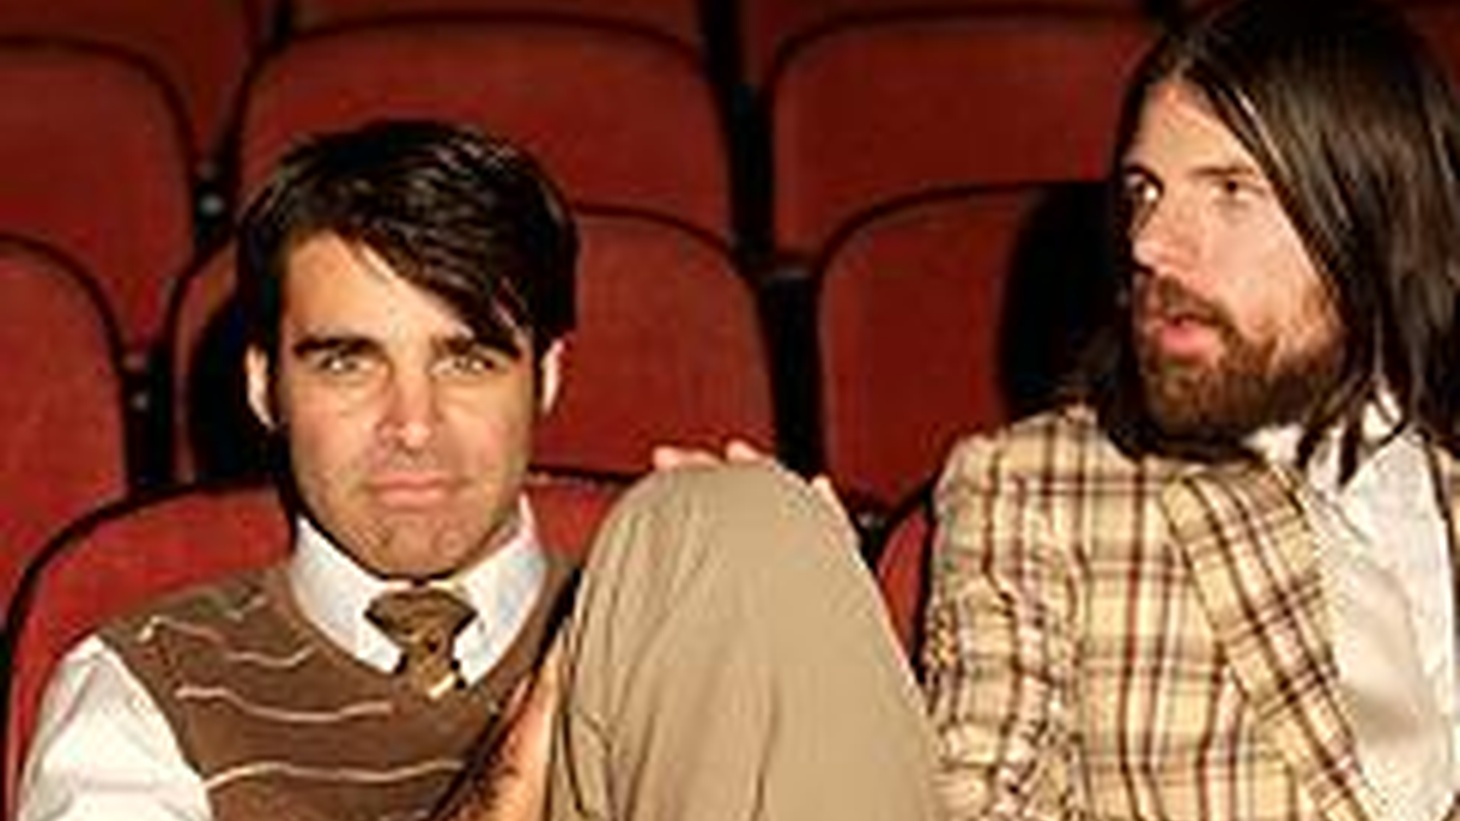 North Carolina's Avett Brothers have released a steady stream of records since 2002...